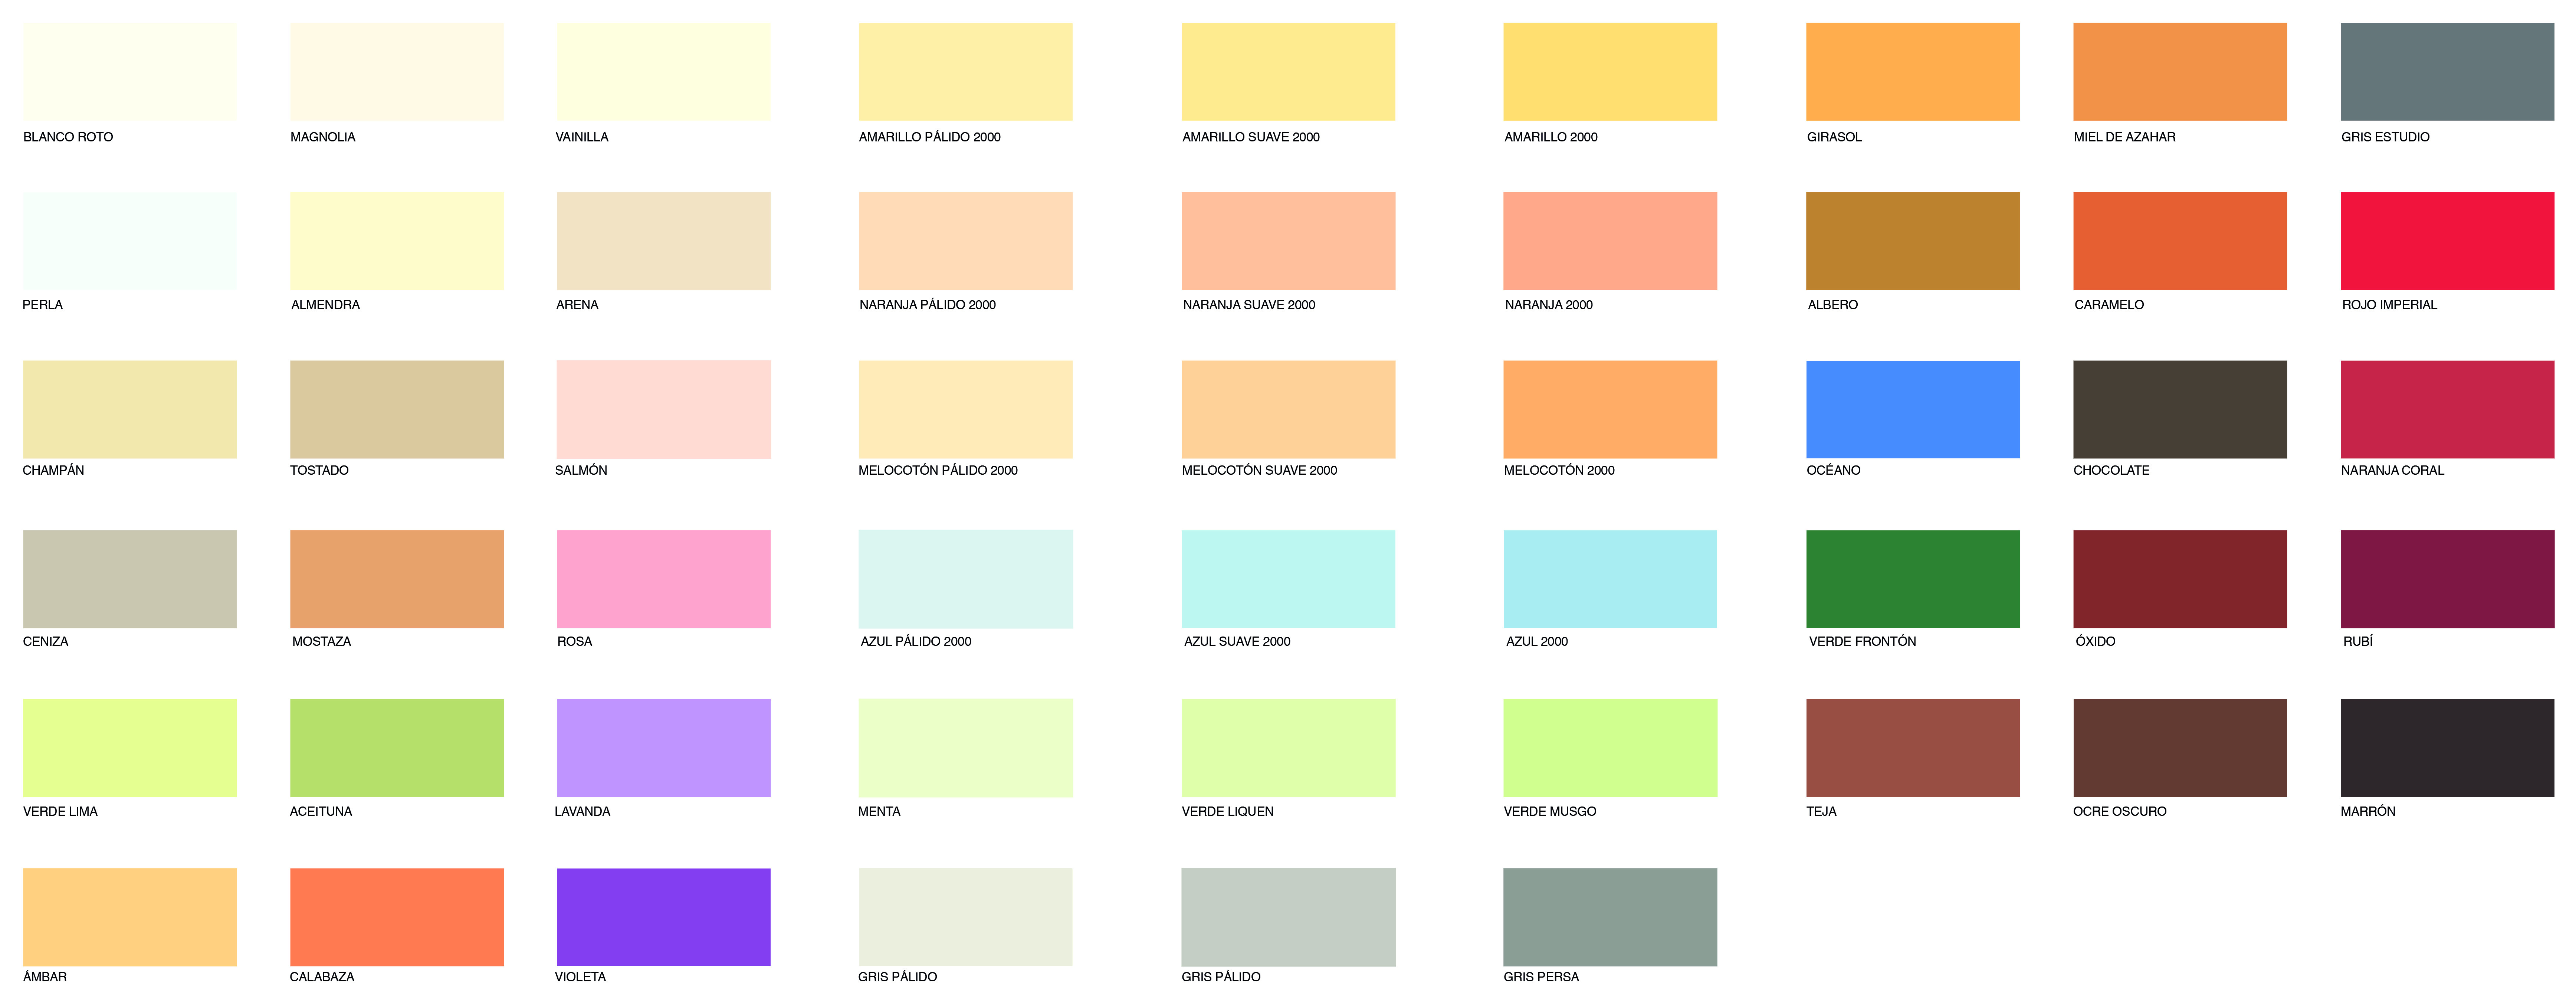 Colores De Pintura De Pared Único Cartas De Color De Pinturas Para Hogar E Industria Of Colores De Pintura De Pared Lujo Tendencias En Colores Para Paredes 2016